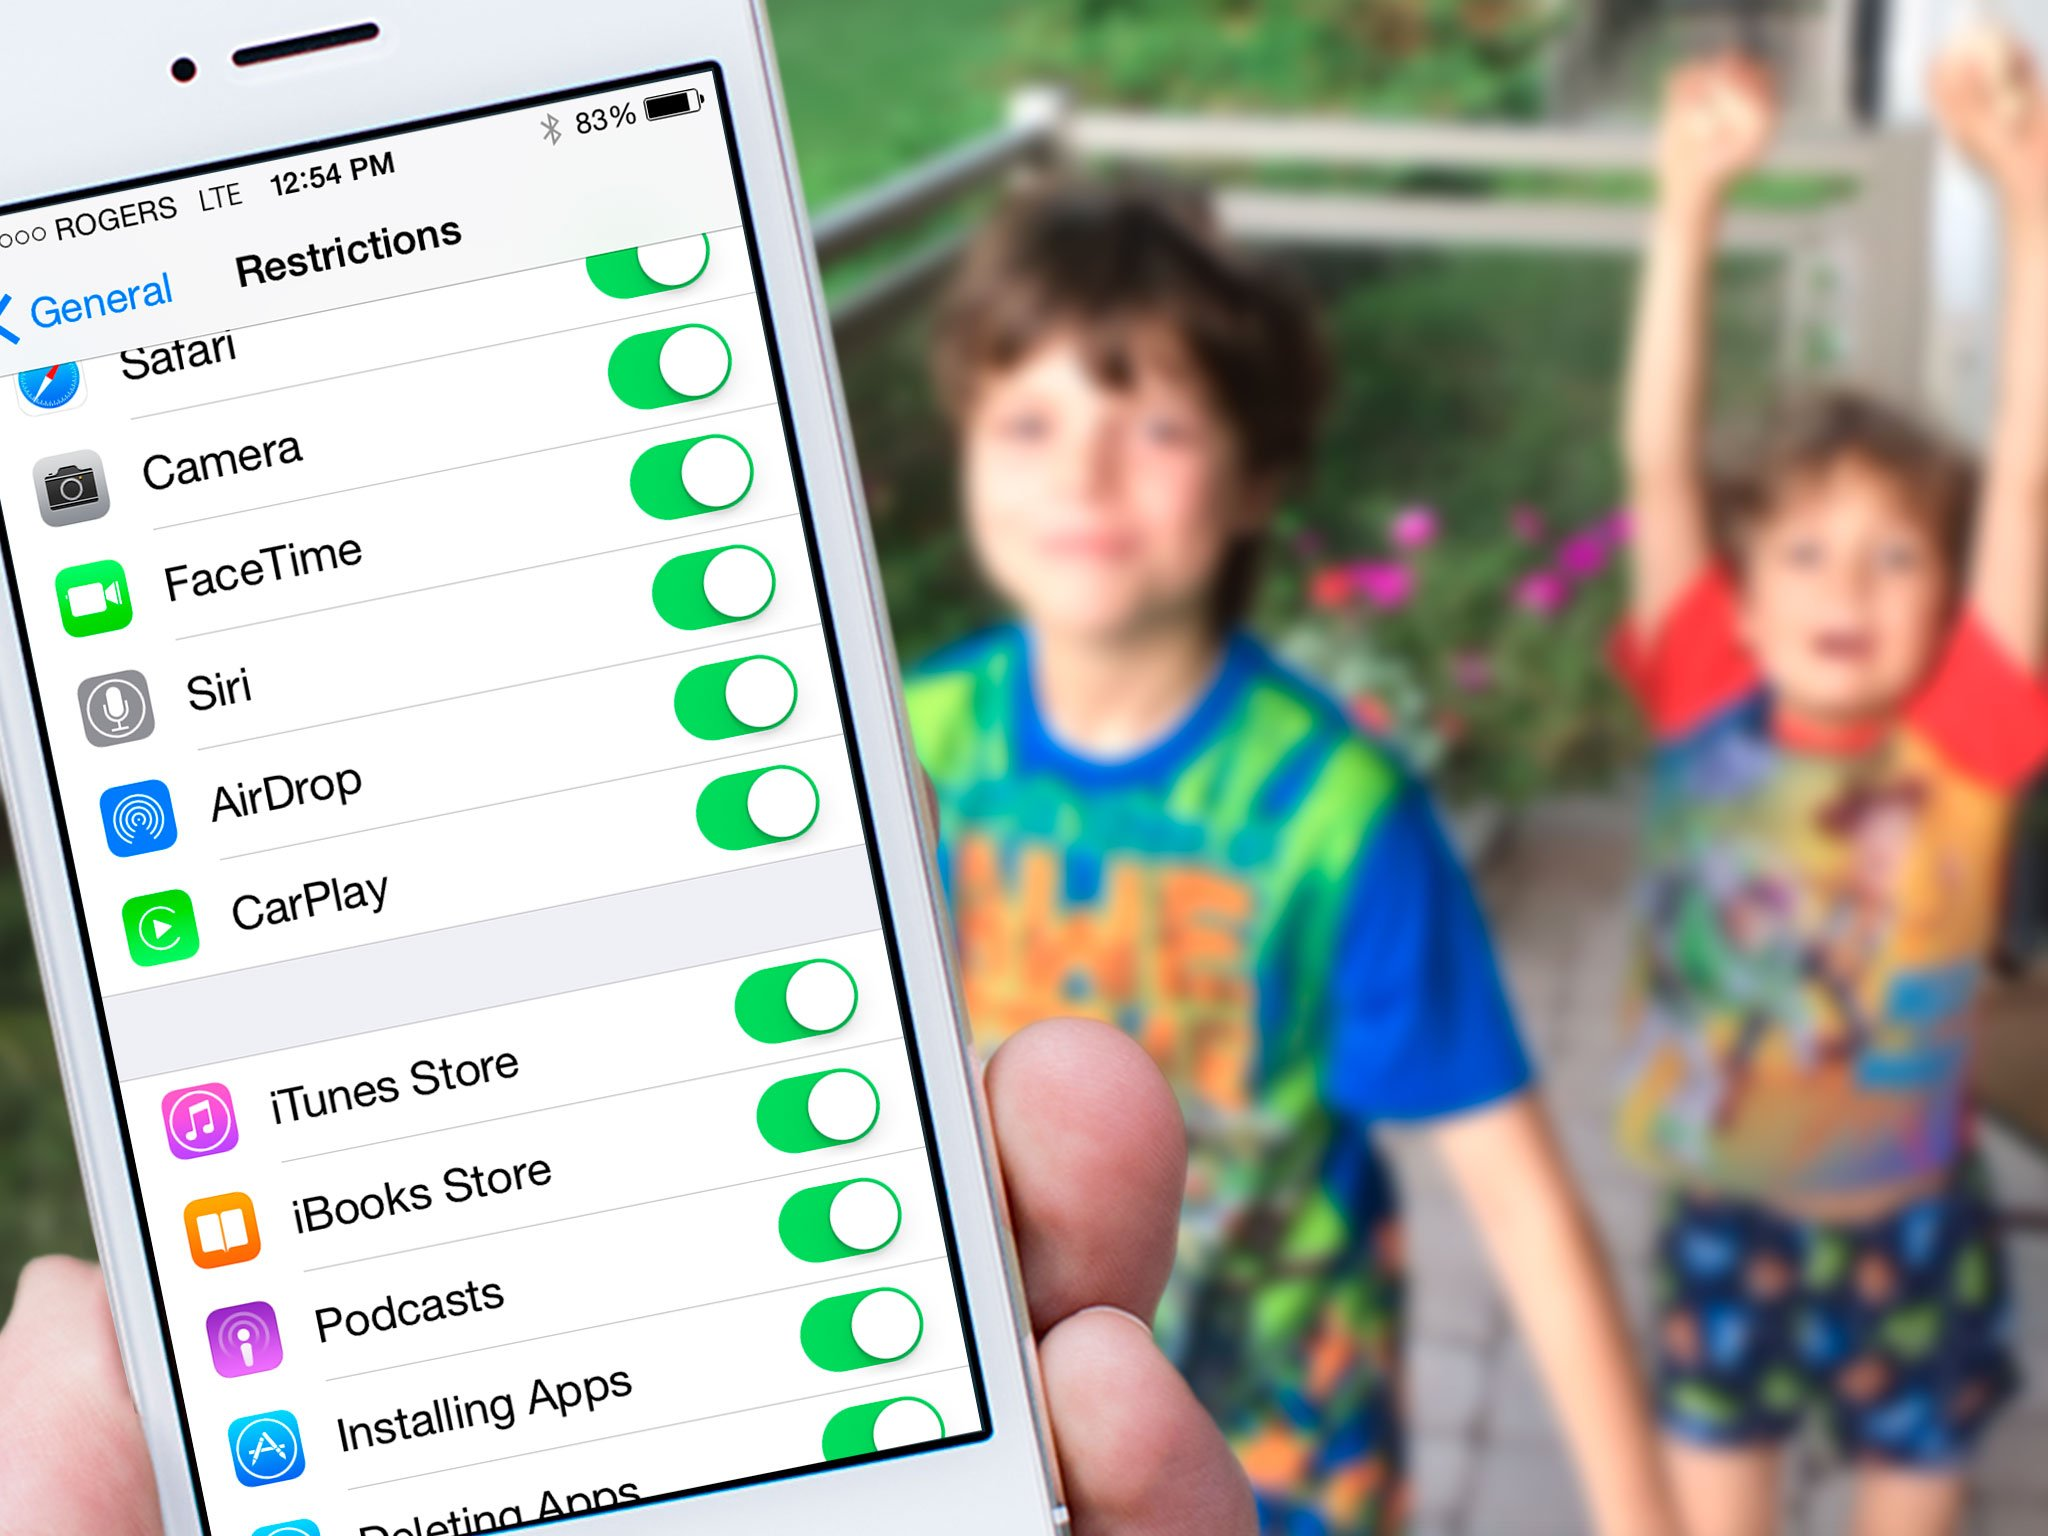 How To Restrict Airdrop With Parental Controls For Iphone And Ipad